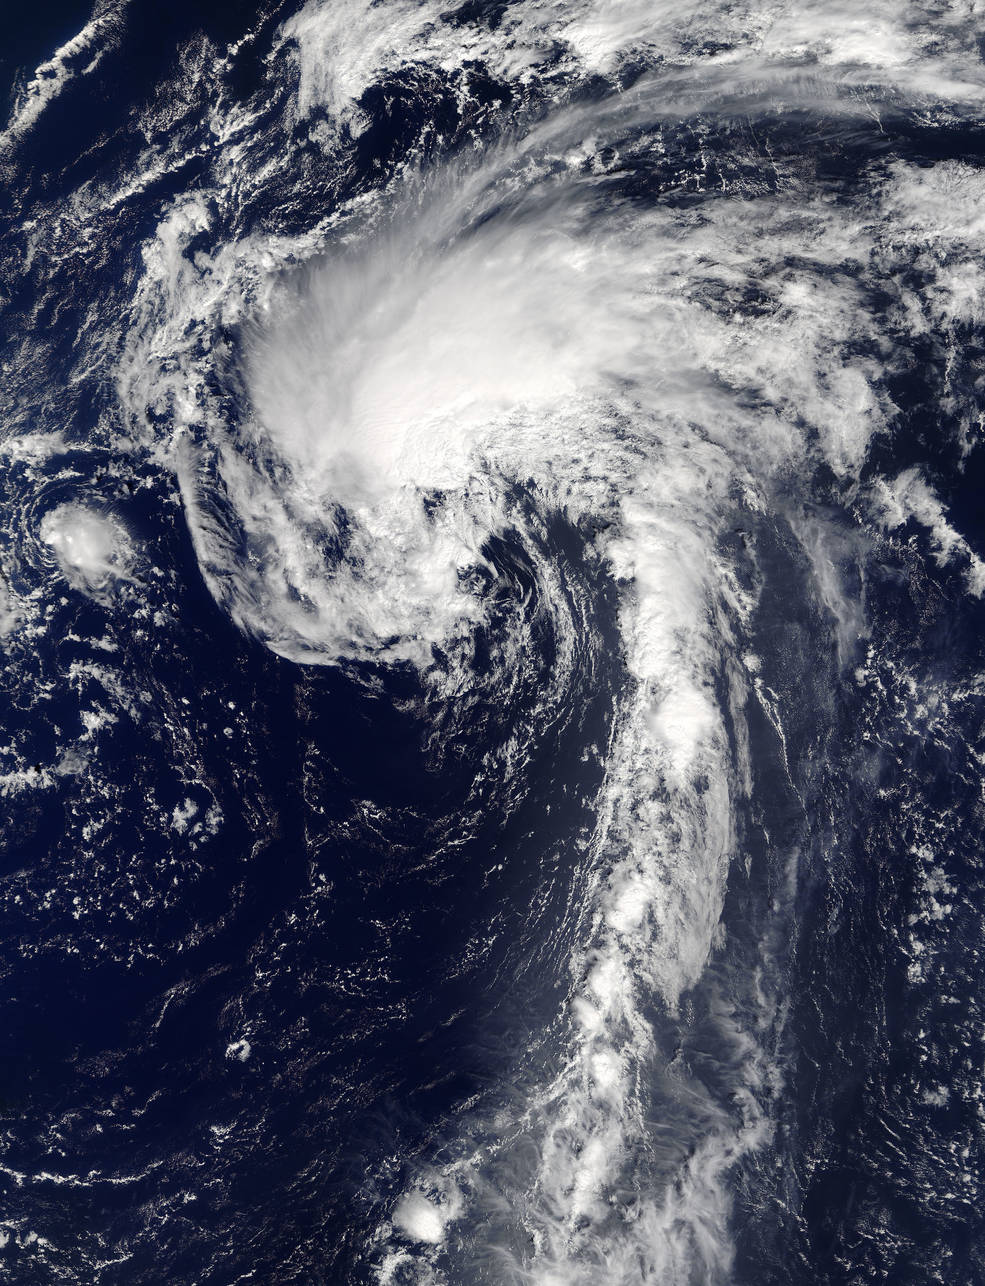 (Image: NASA's Terra satellite captured this visible image of Tropical Storm Ian on Sept. 14 at 10:15 a.m. EDT (14:15 UTC) as it continued to move through the northern Atlantic Ocean. Credits: NASA Goddard MODIS Rapid Response Team)